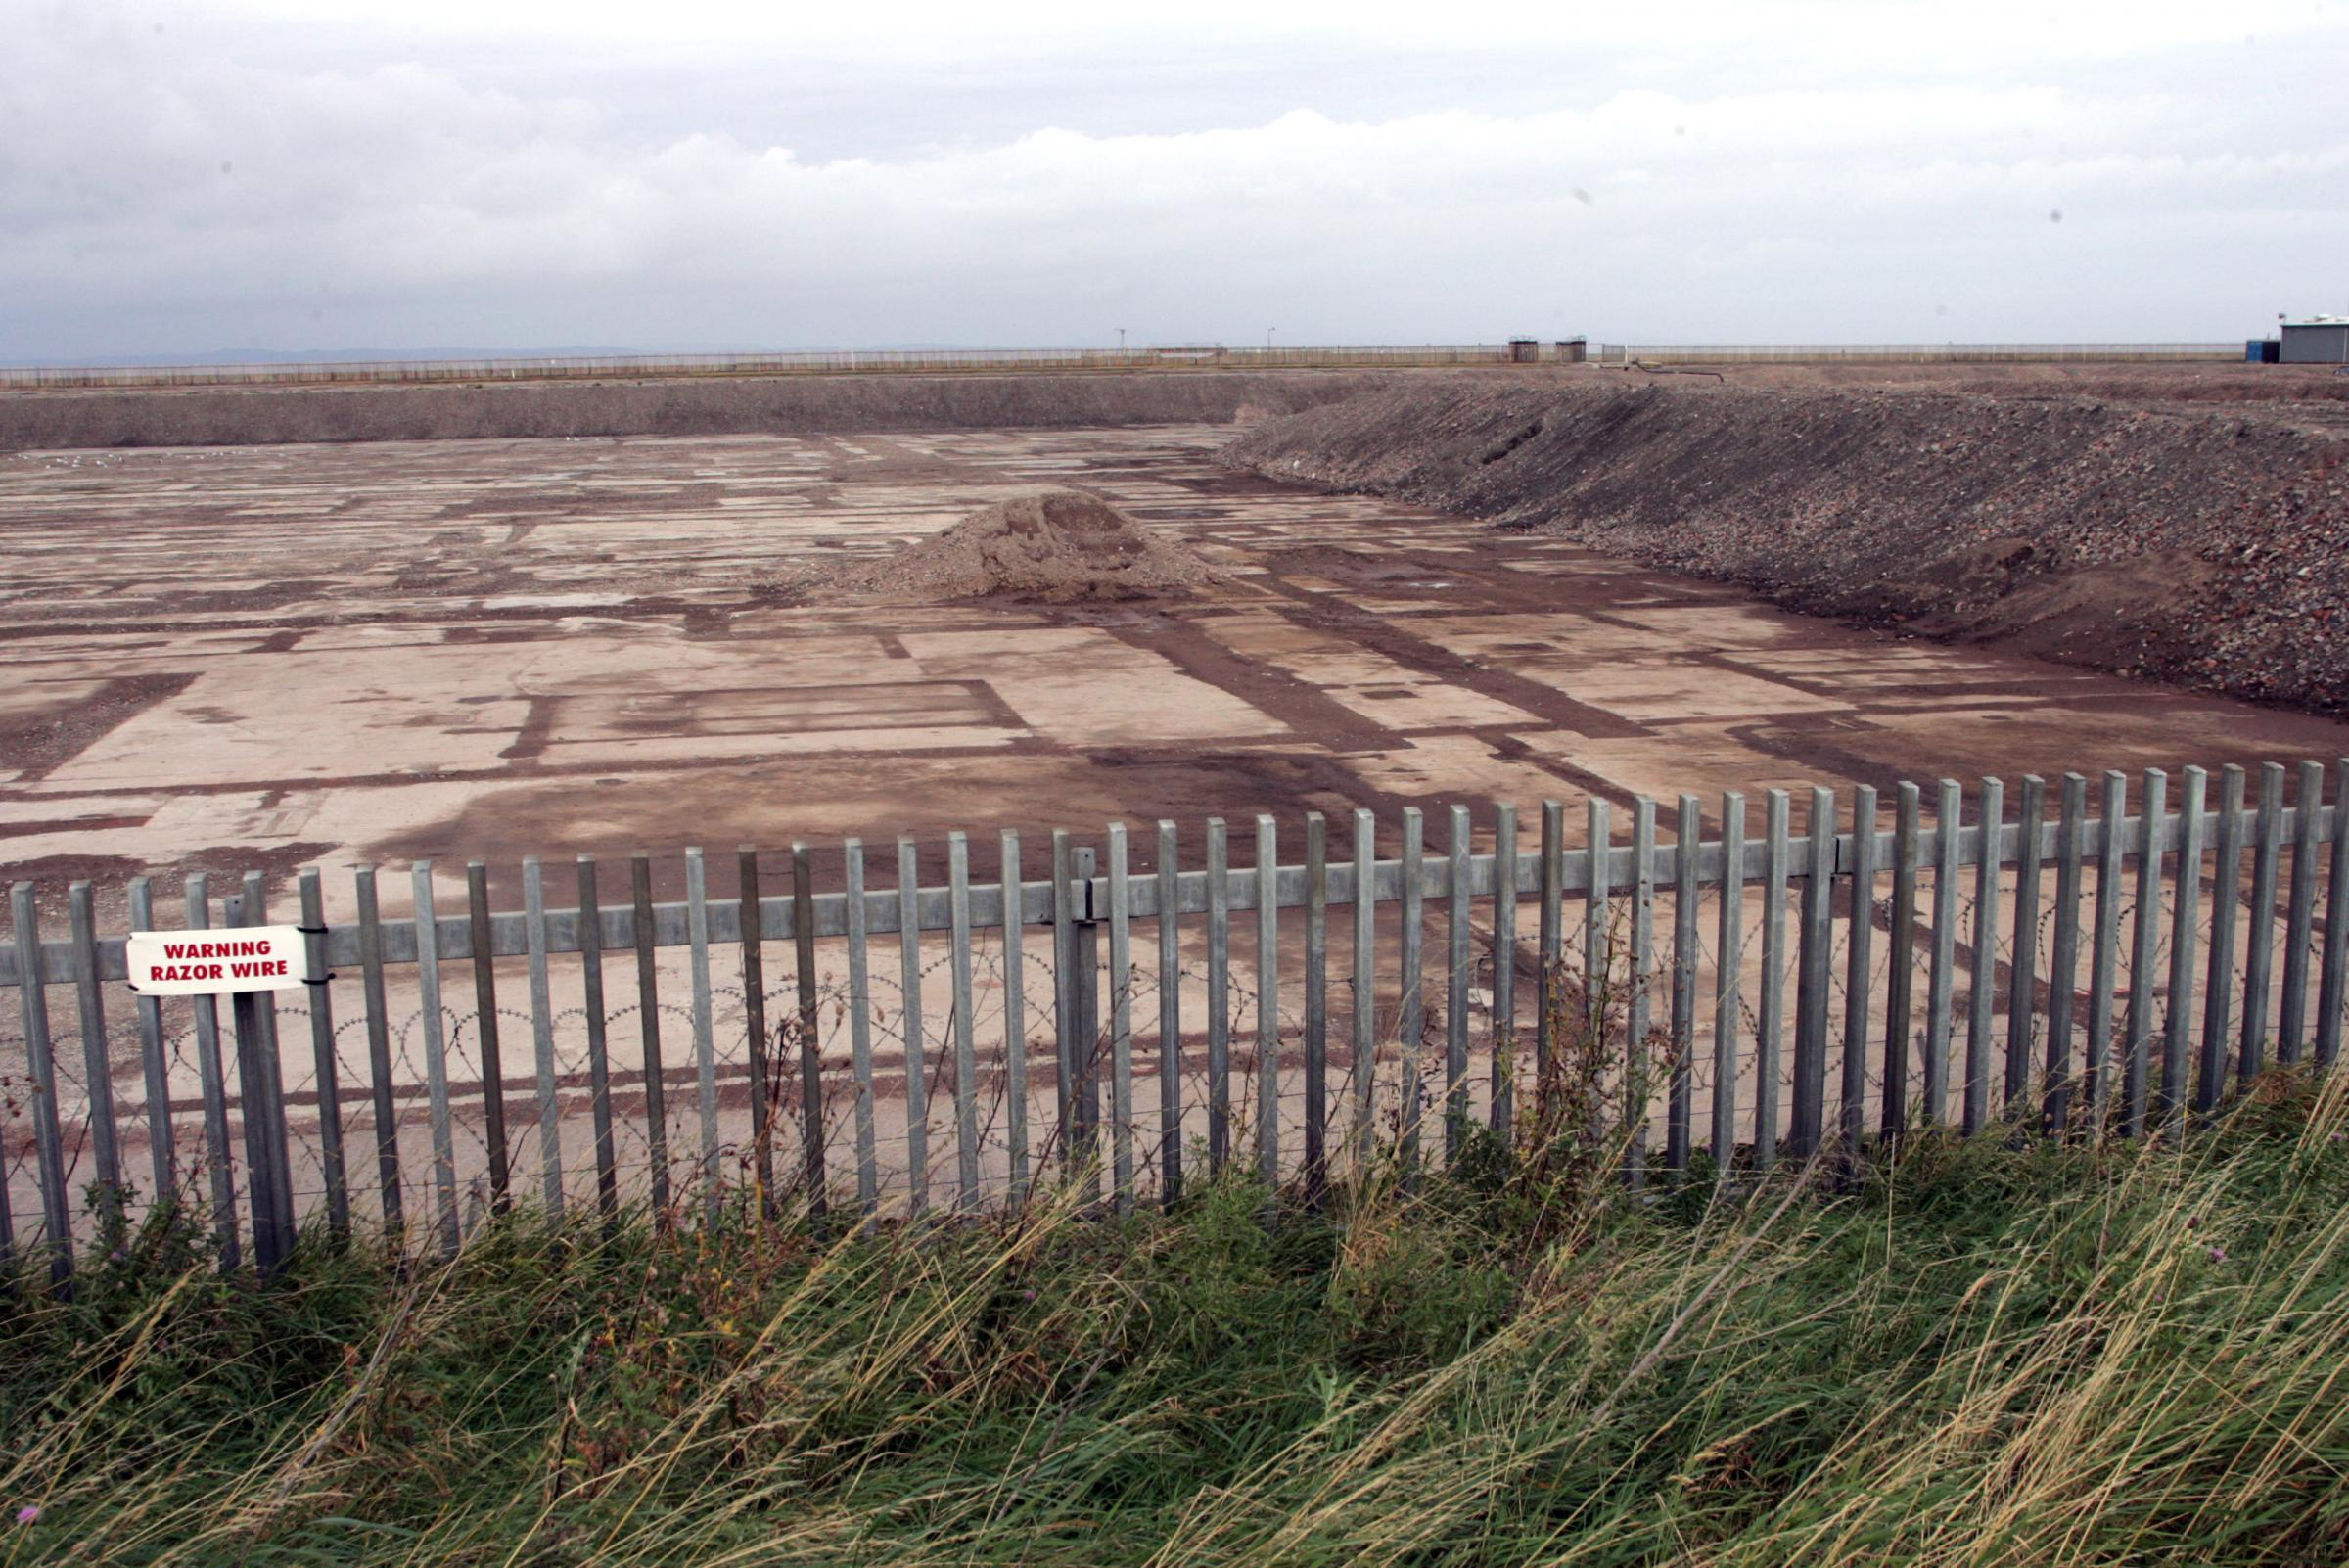 Cockenzie Power Station has been razed to the ground